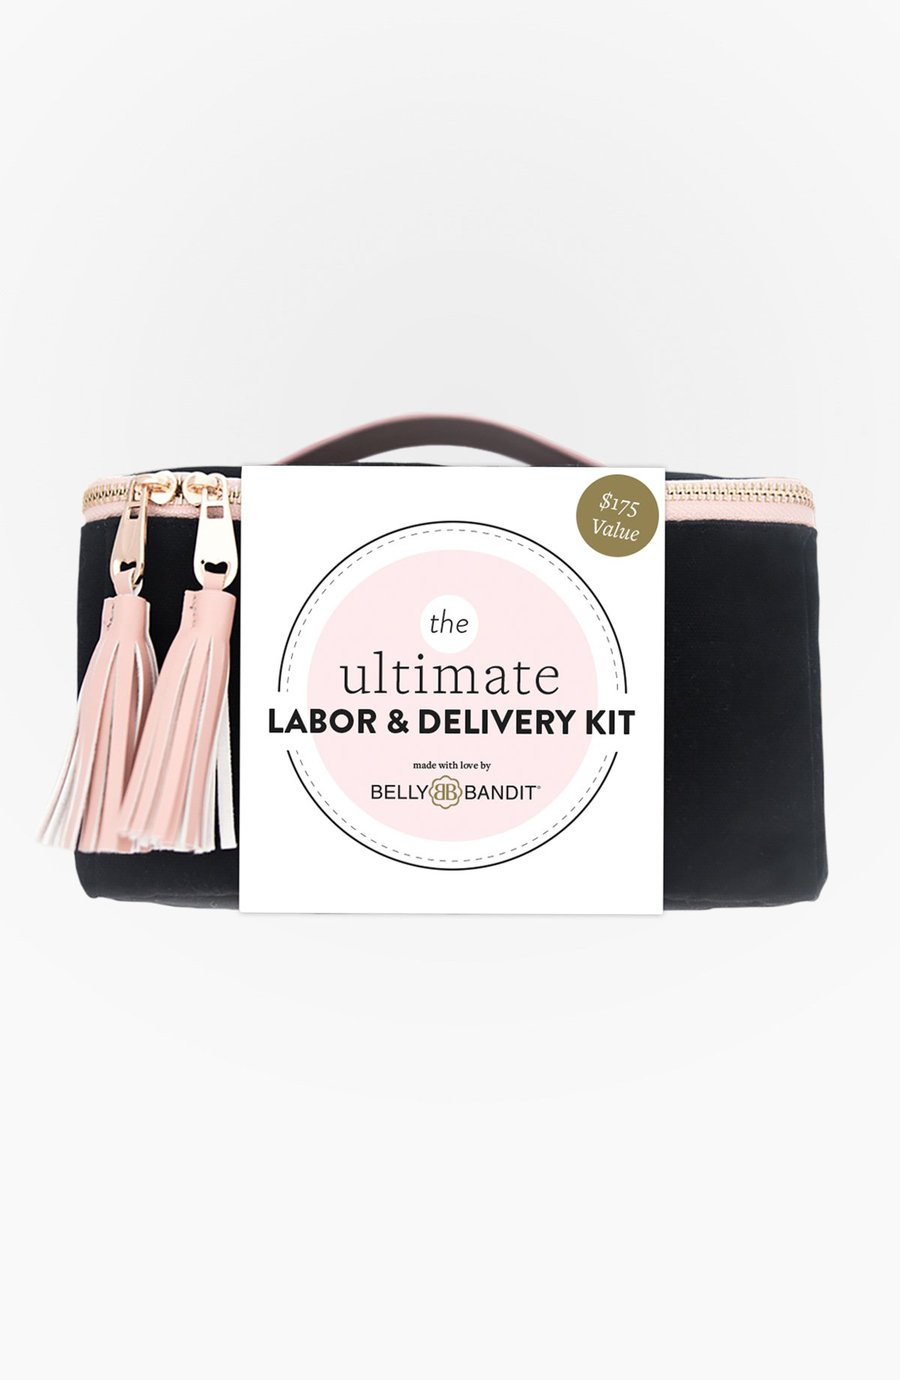 THE ULTIMATE LABOR AND DELIVERY KIT